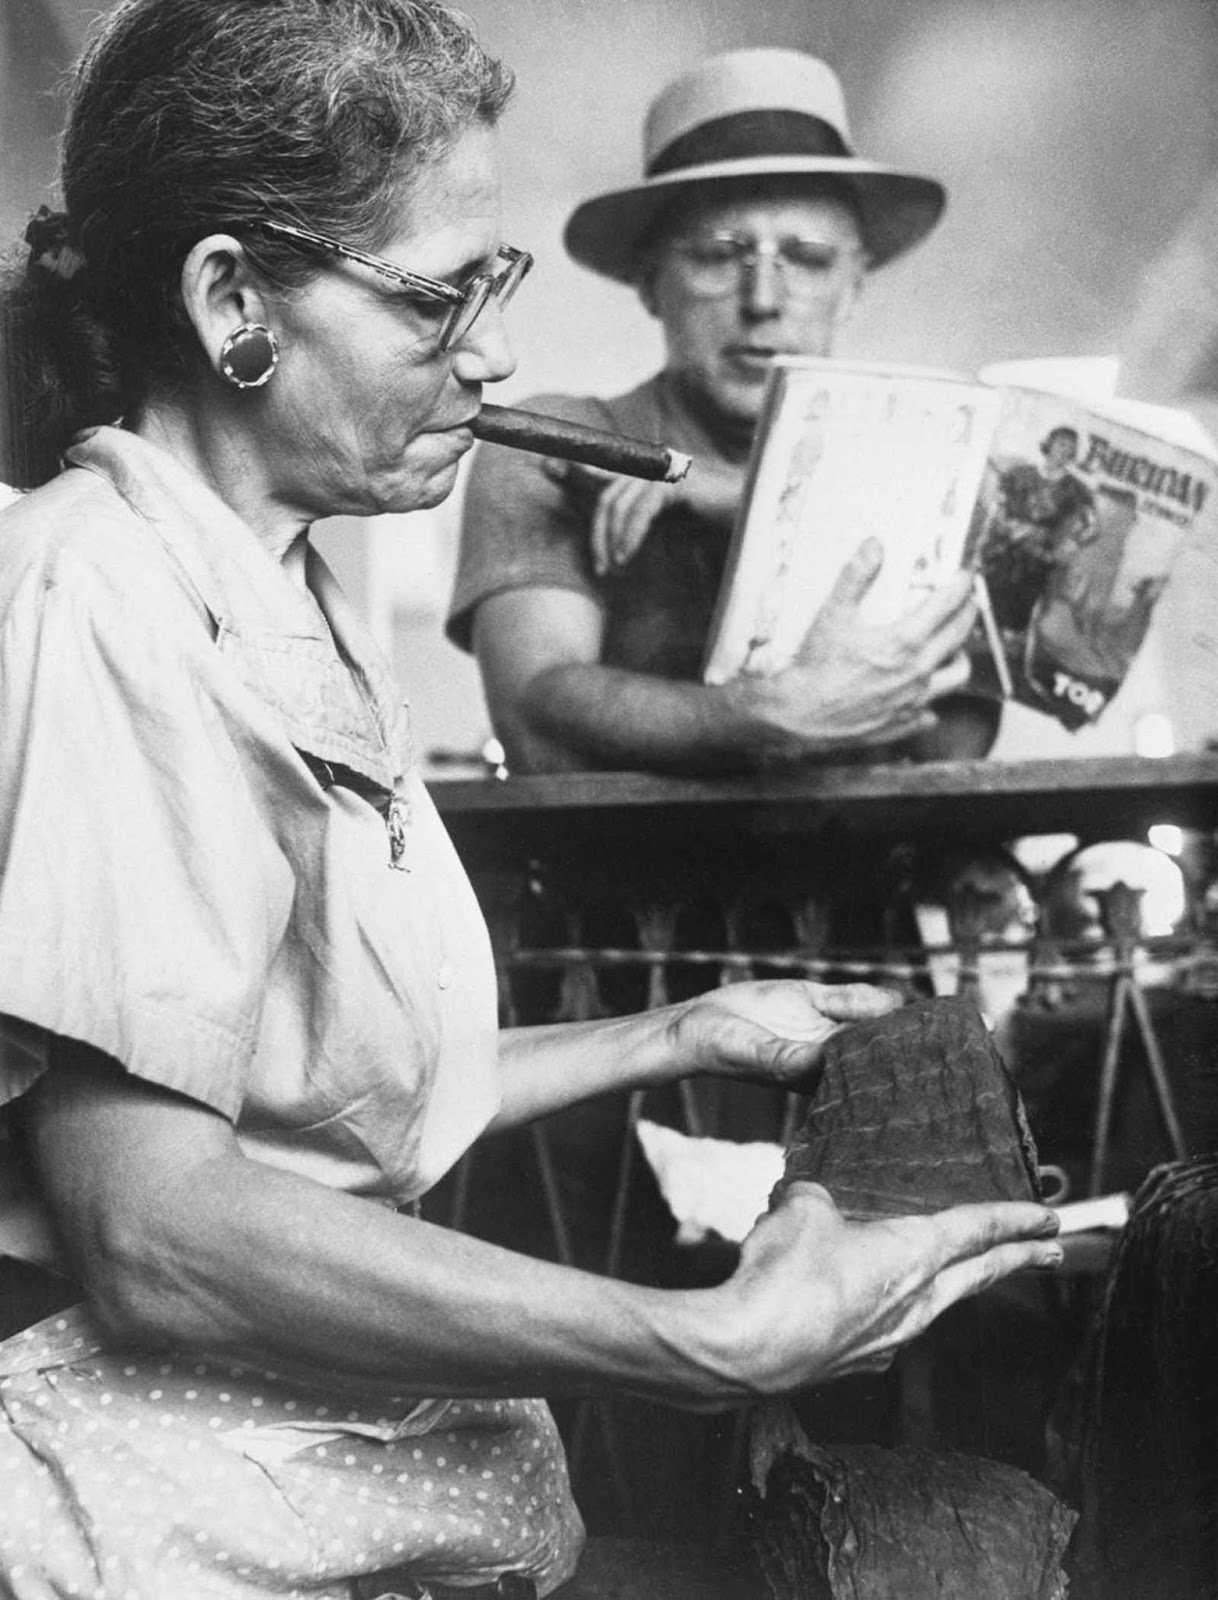 A lector reads a book to a worker in the Piedra Cigar factory in Maianao, Cuba. 1960.